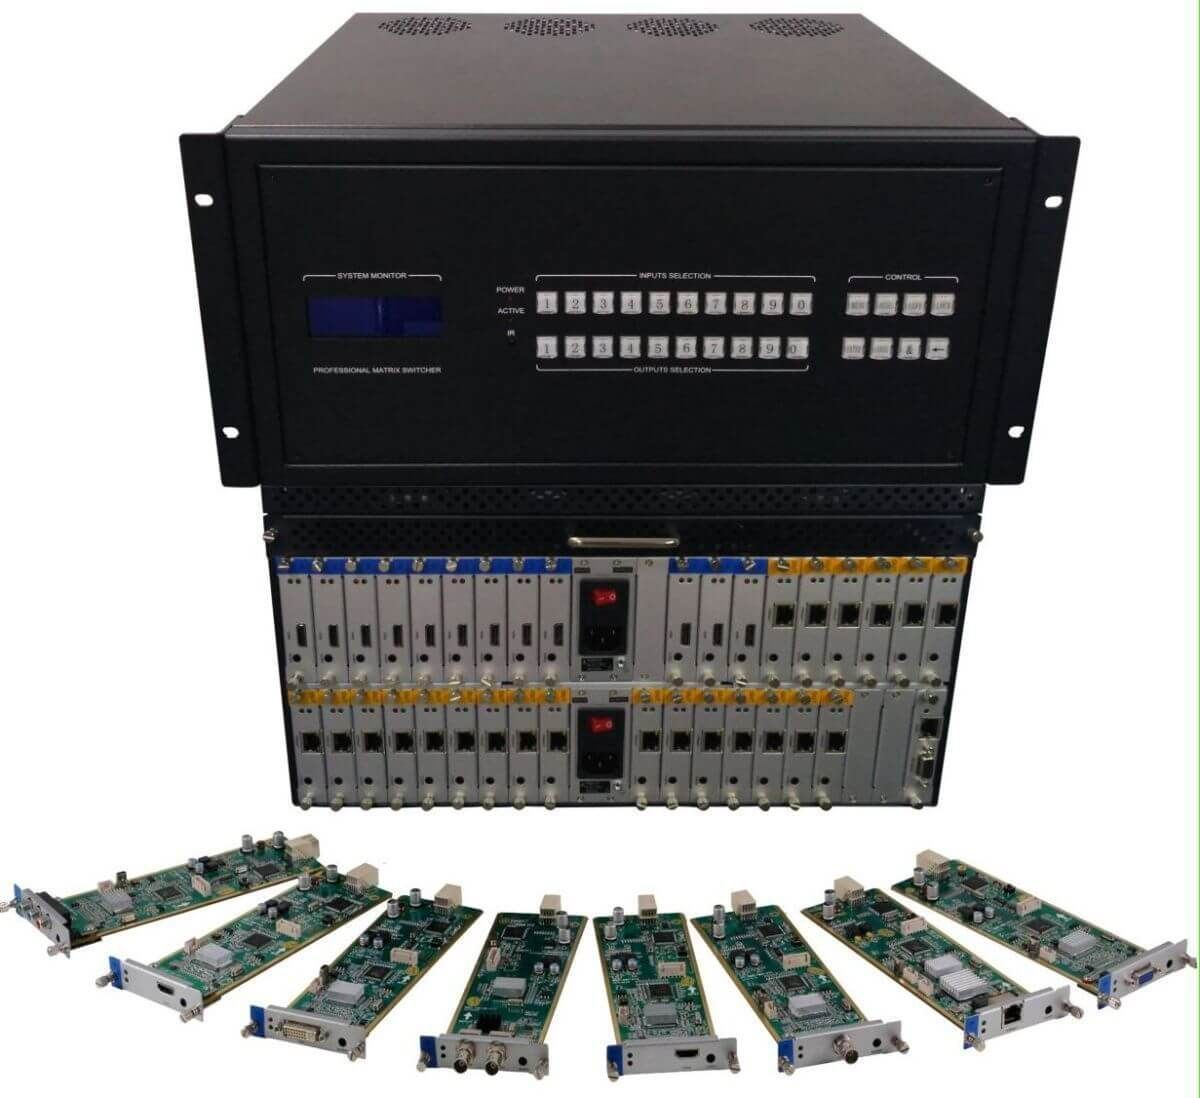 12x24 HDMI Matrix Switcher with Video Wall Processor